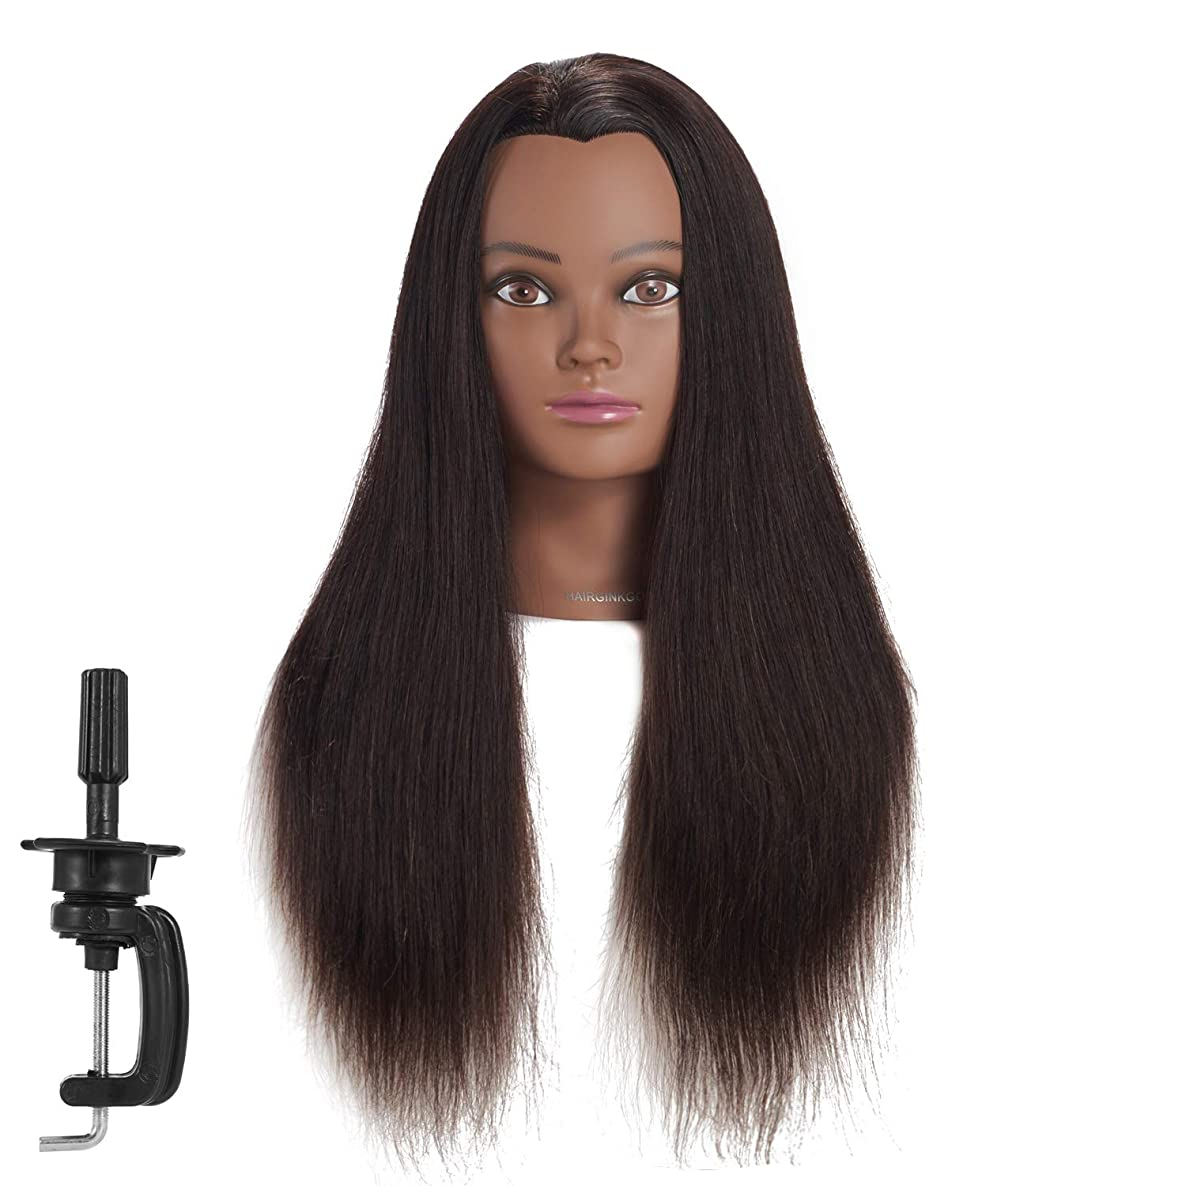 Hairginkgo Mannequin Head 24